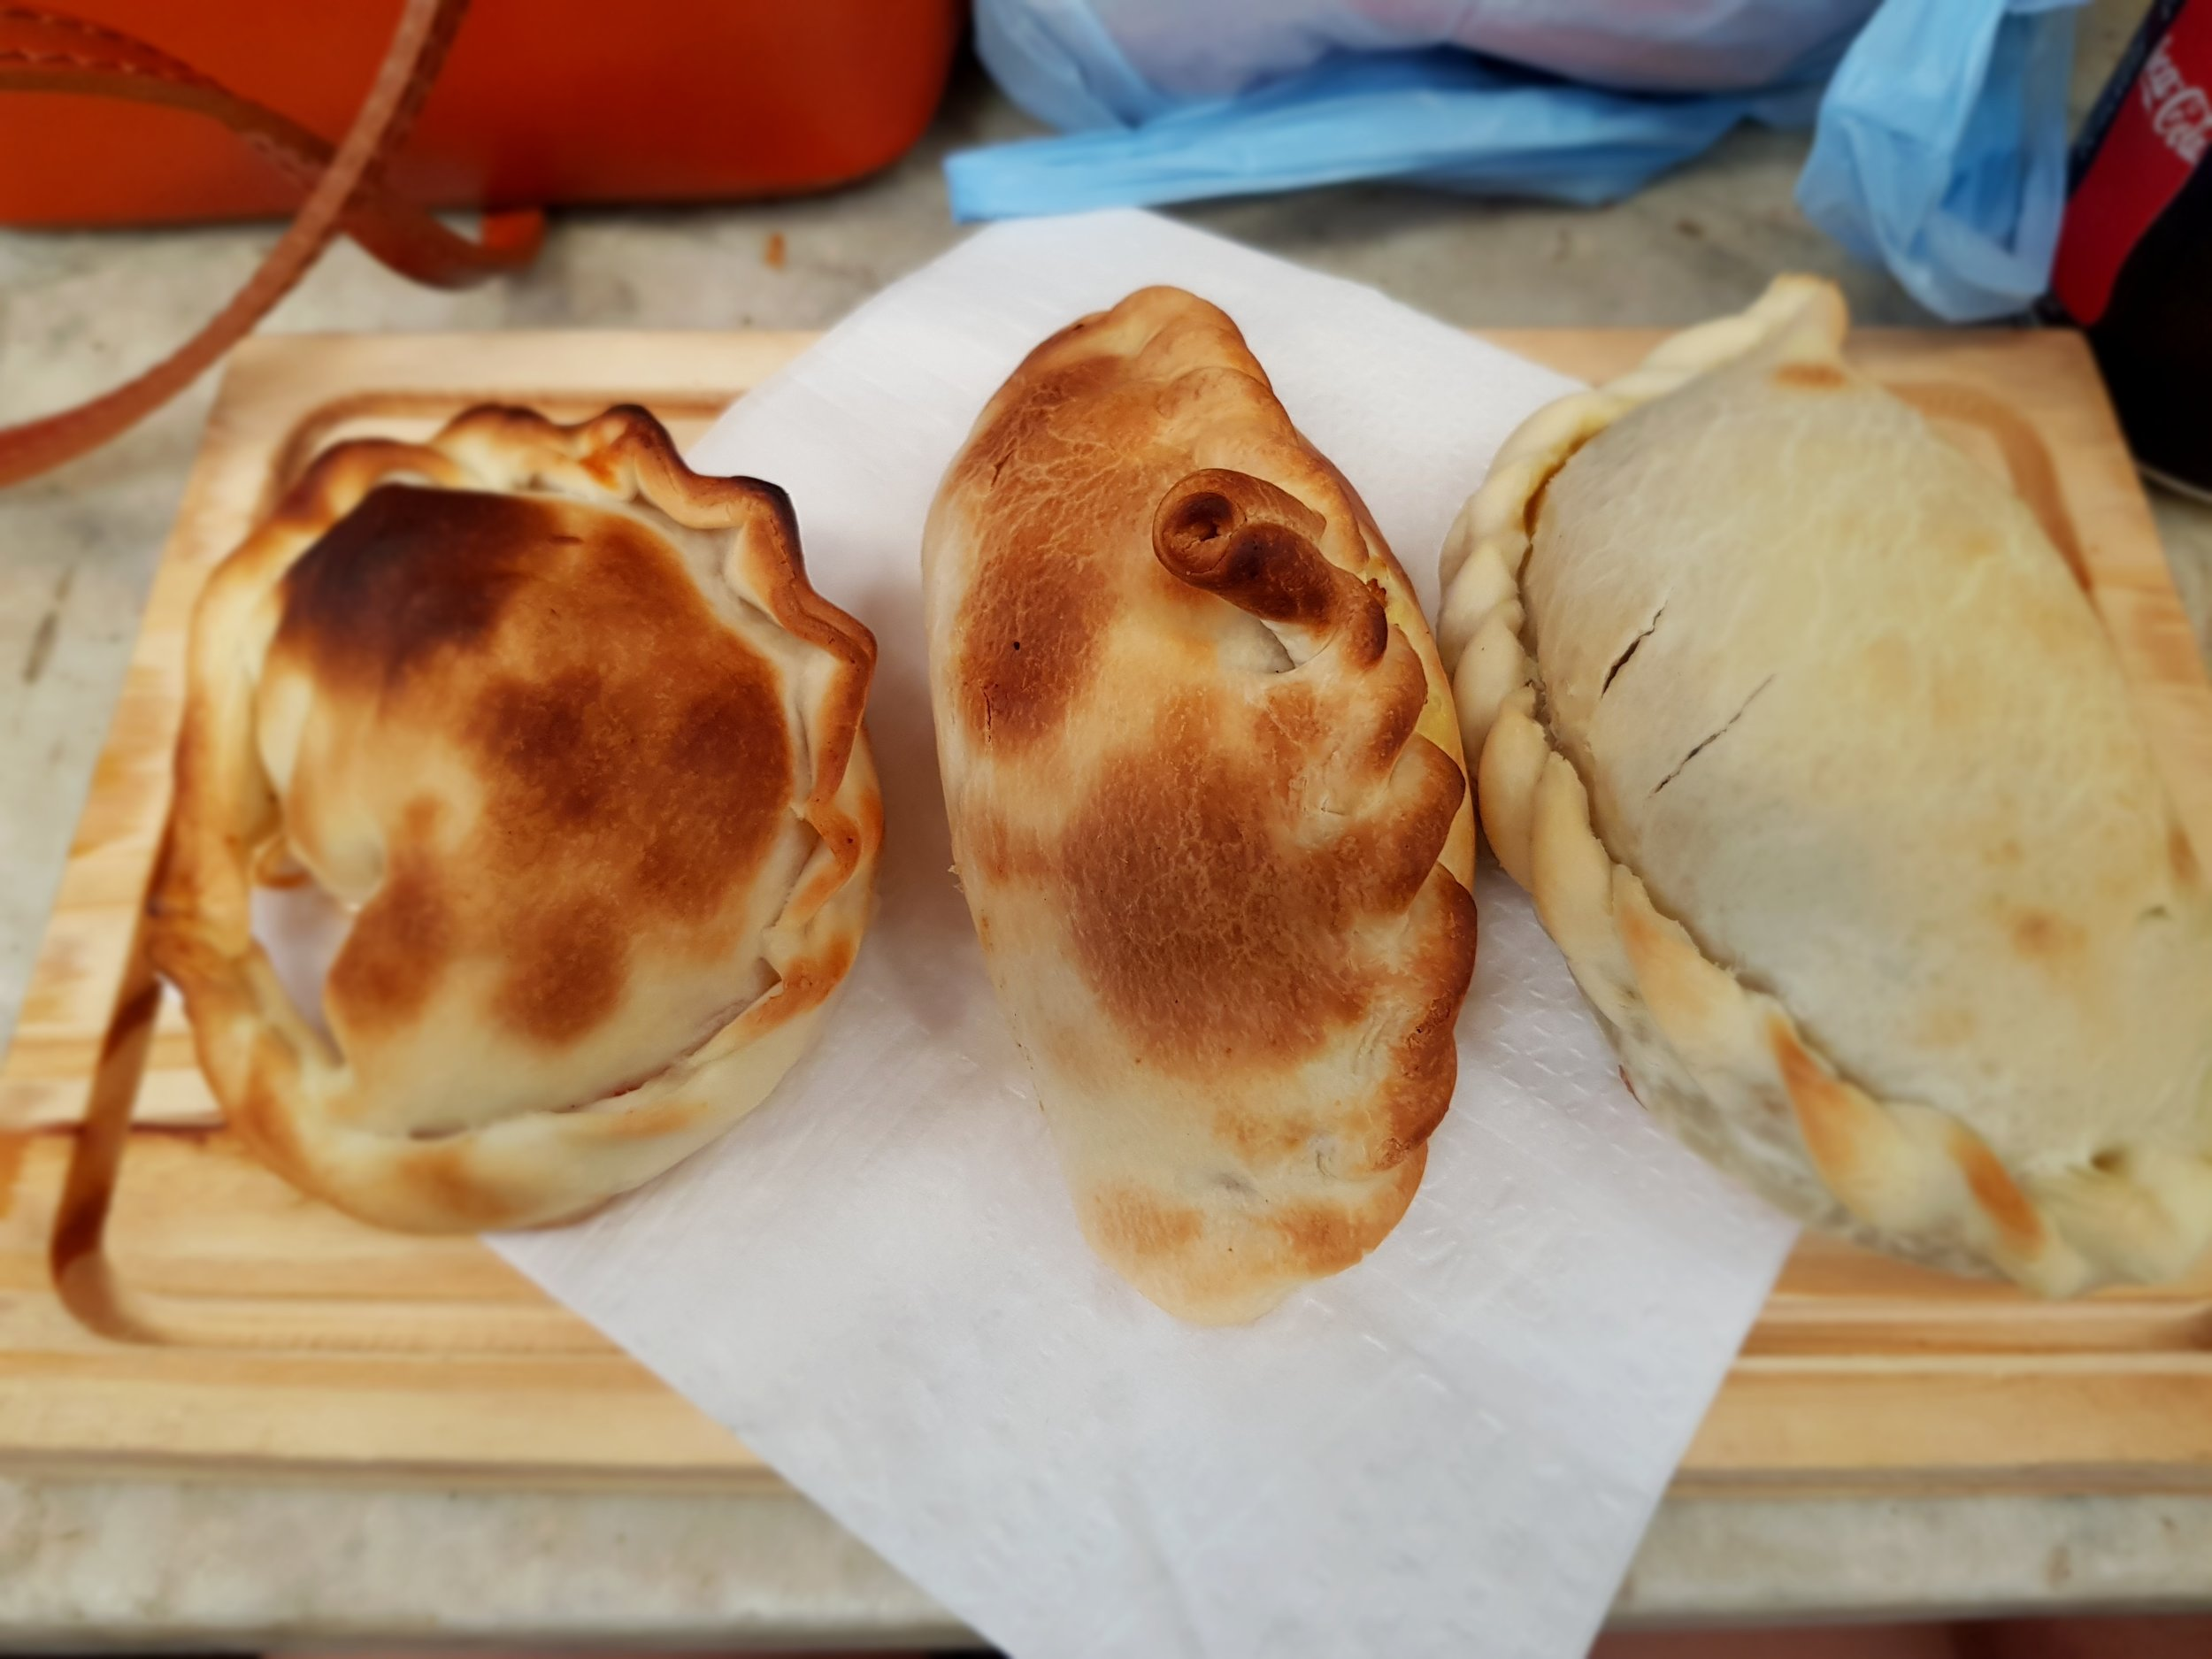 A trio of authentic empanadas from the San Telmo food market in Buenos Aires, a must-visit for any foodies!